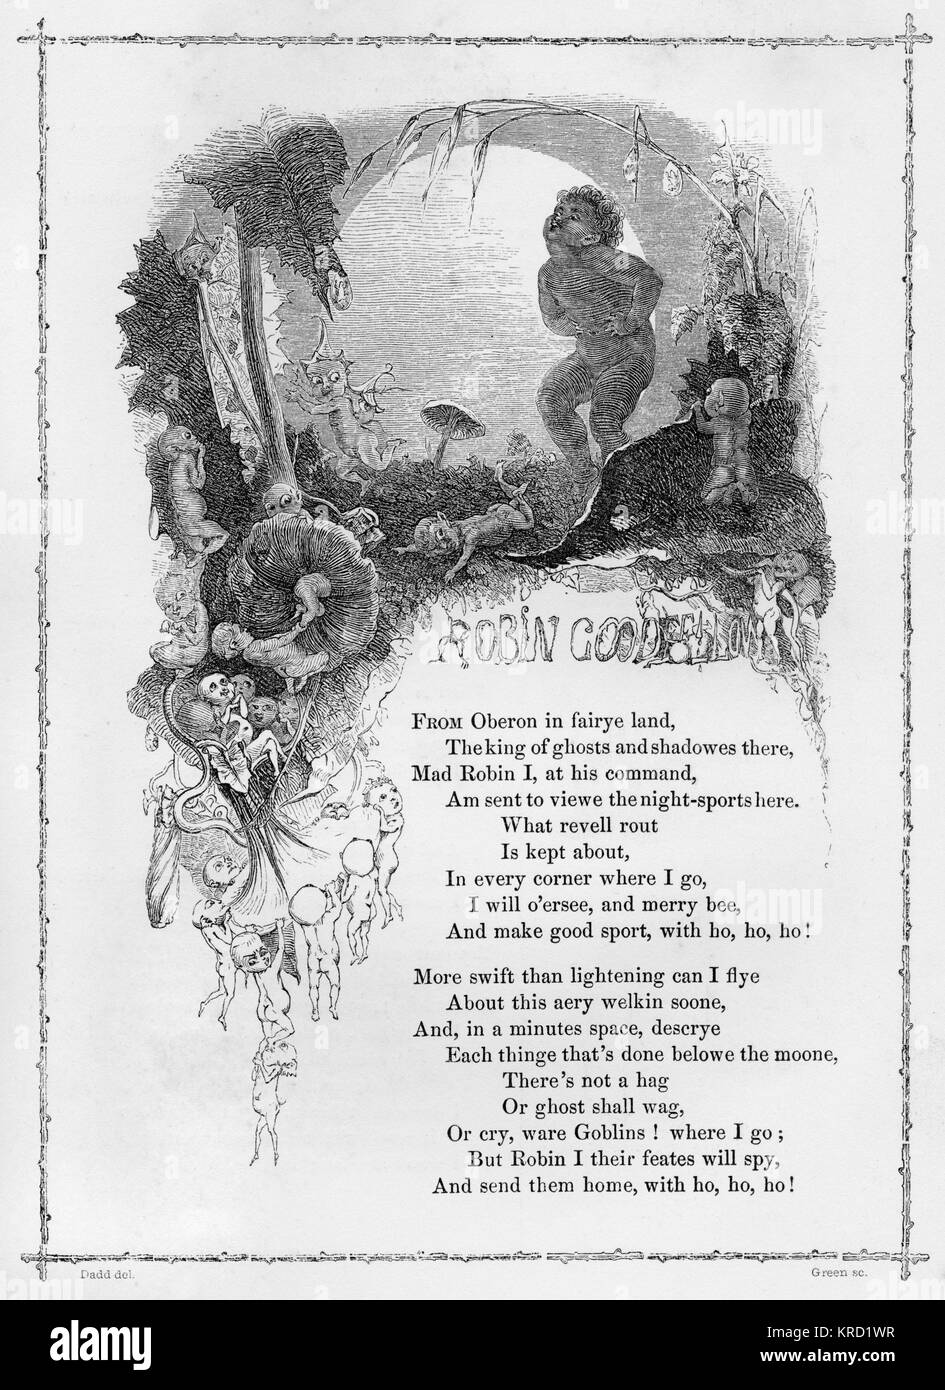 ROBIN GOODFELLOW (The Mad Merry Pranks of)  British ballad.  More commonly known as Puck, the work of this mischievous - Stock Image